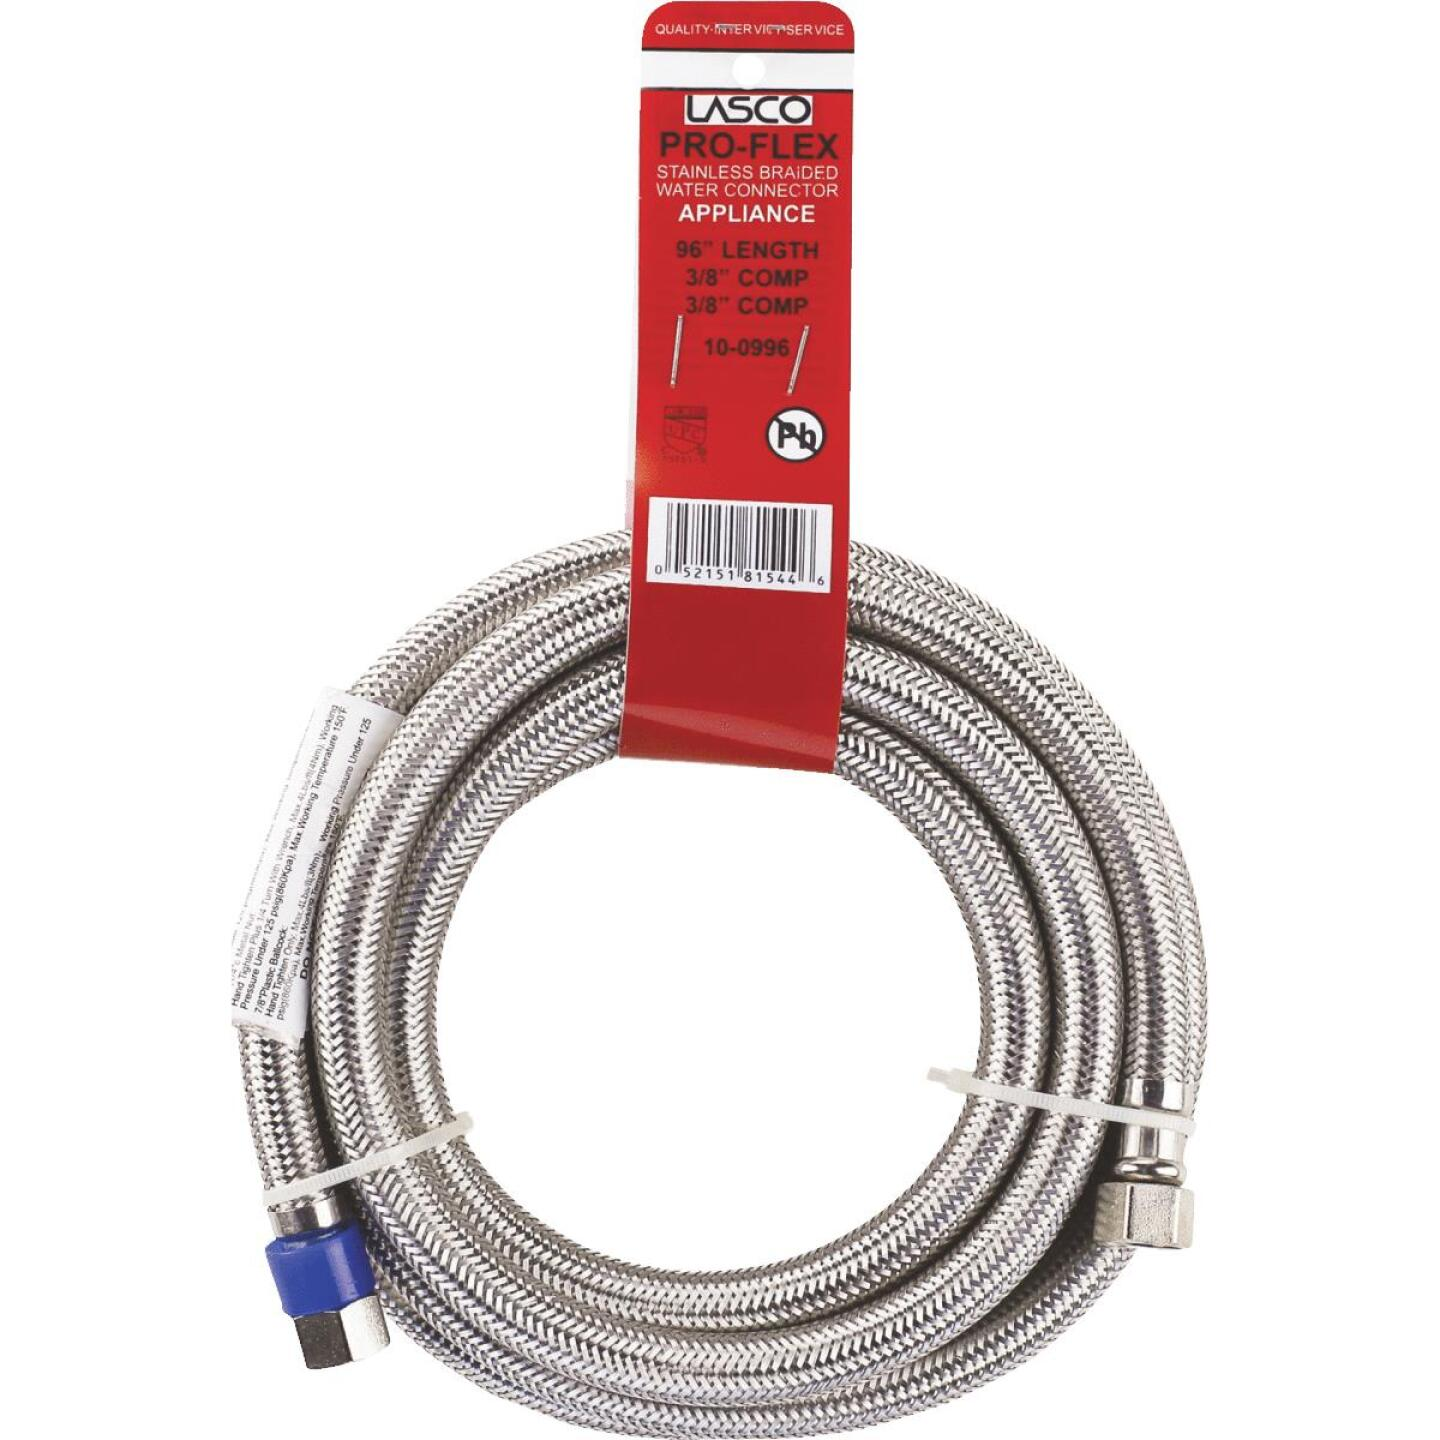 Lasco 3/8 In.C x 3/8 In.C x 96 In.L Braided Stainless Steel Flex Line Appliance Water Connector Image 2